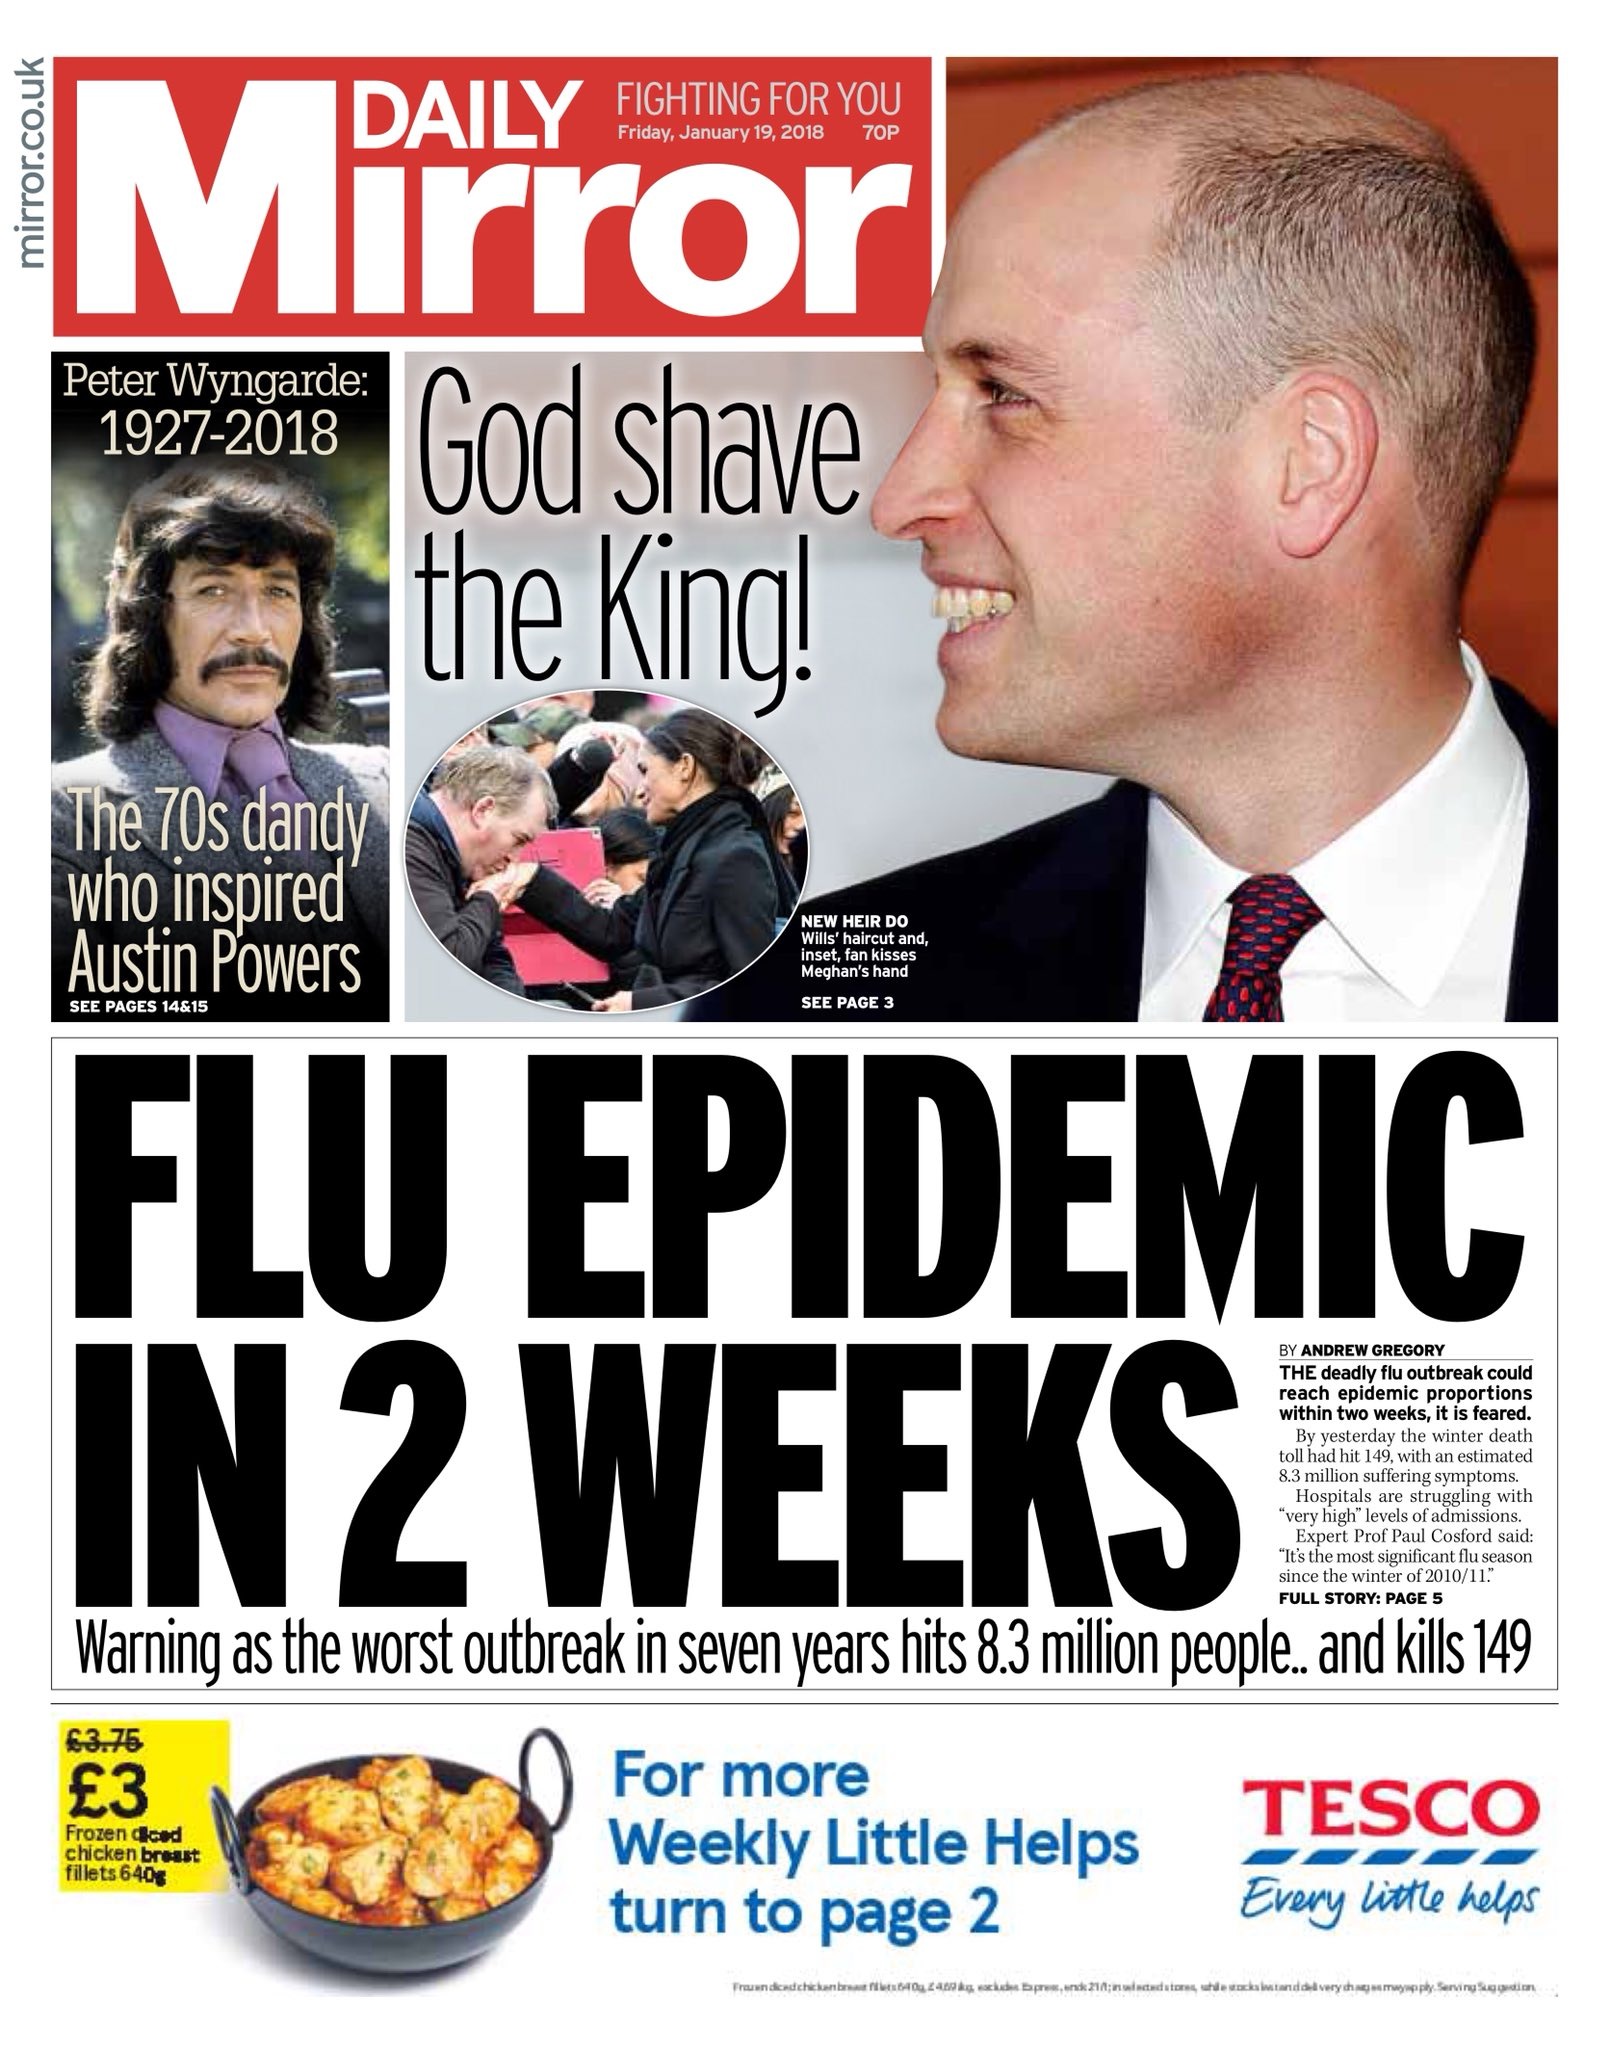 Friday's Daily Mirror 'Flu epidemic in two weeks'  #tomorrowspaperstoday #bbcpapers (via @hendopolis) https://t.co/2swr0Iyvmg